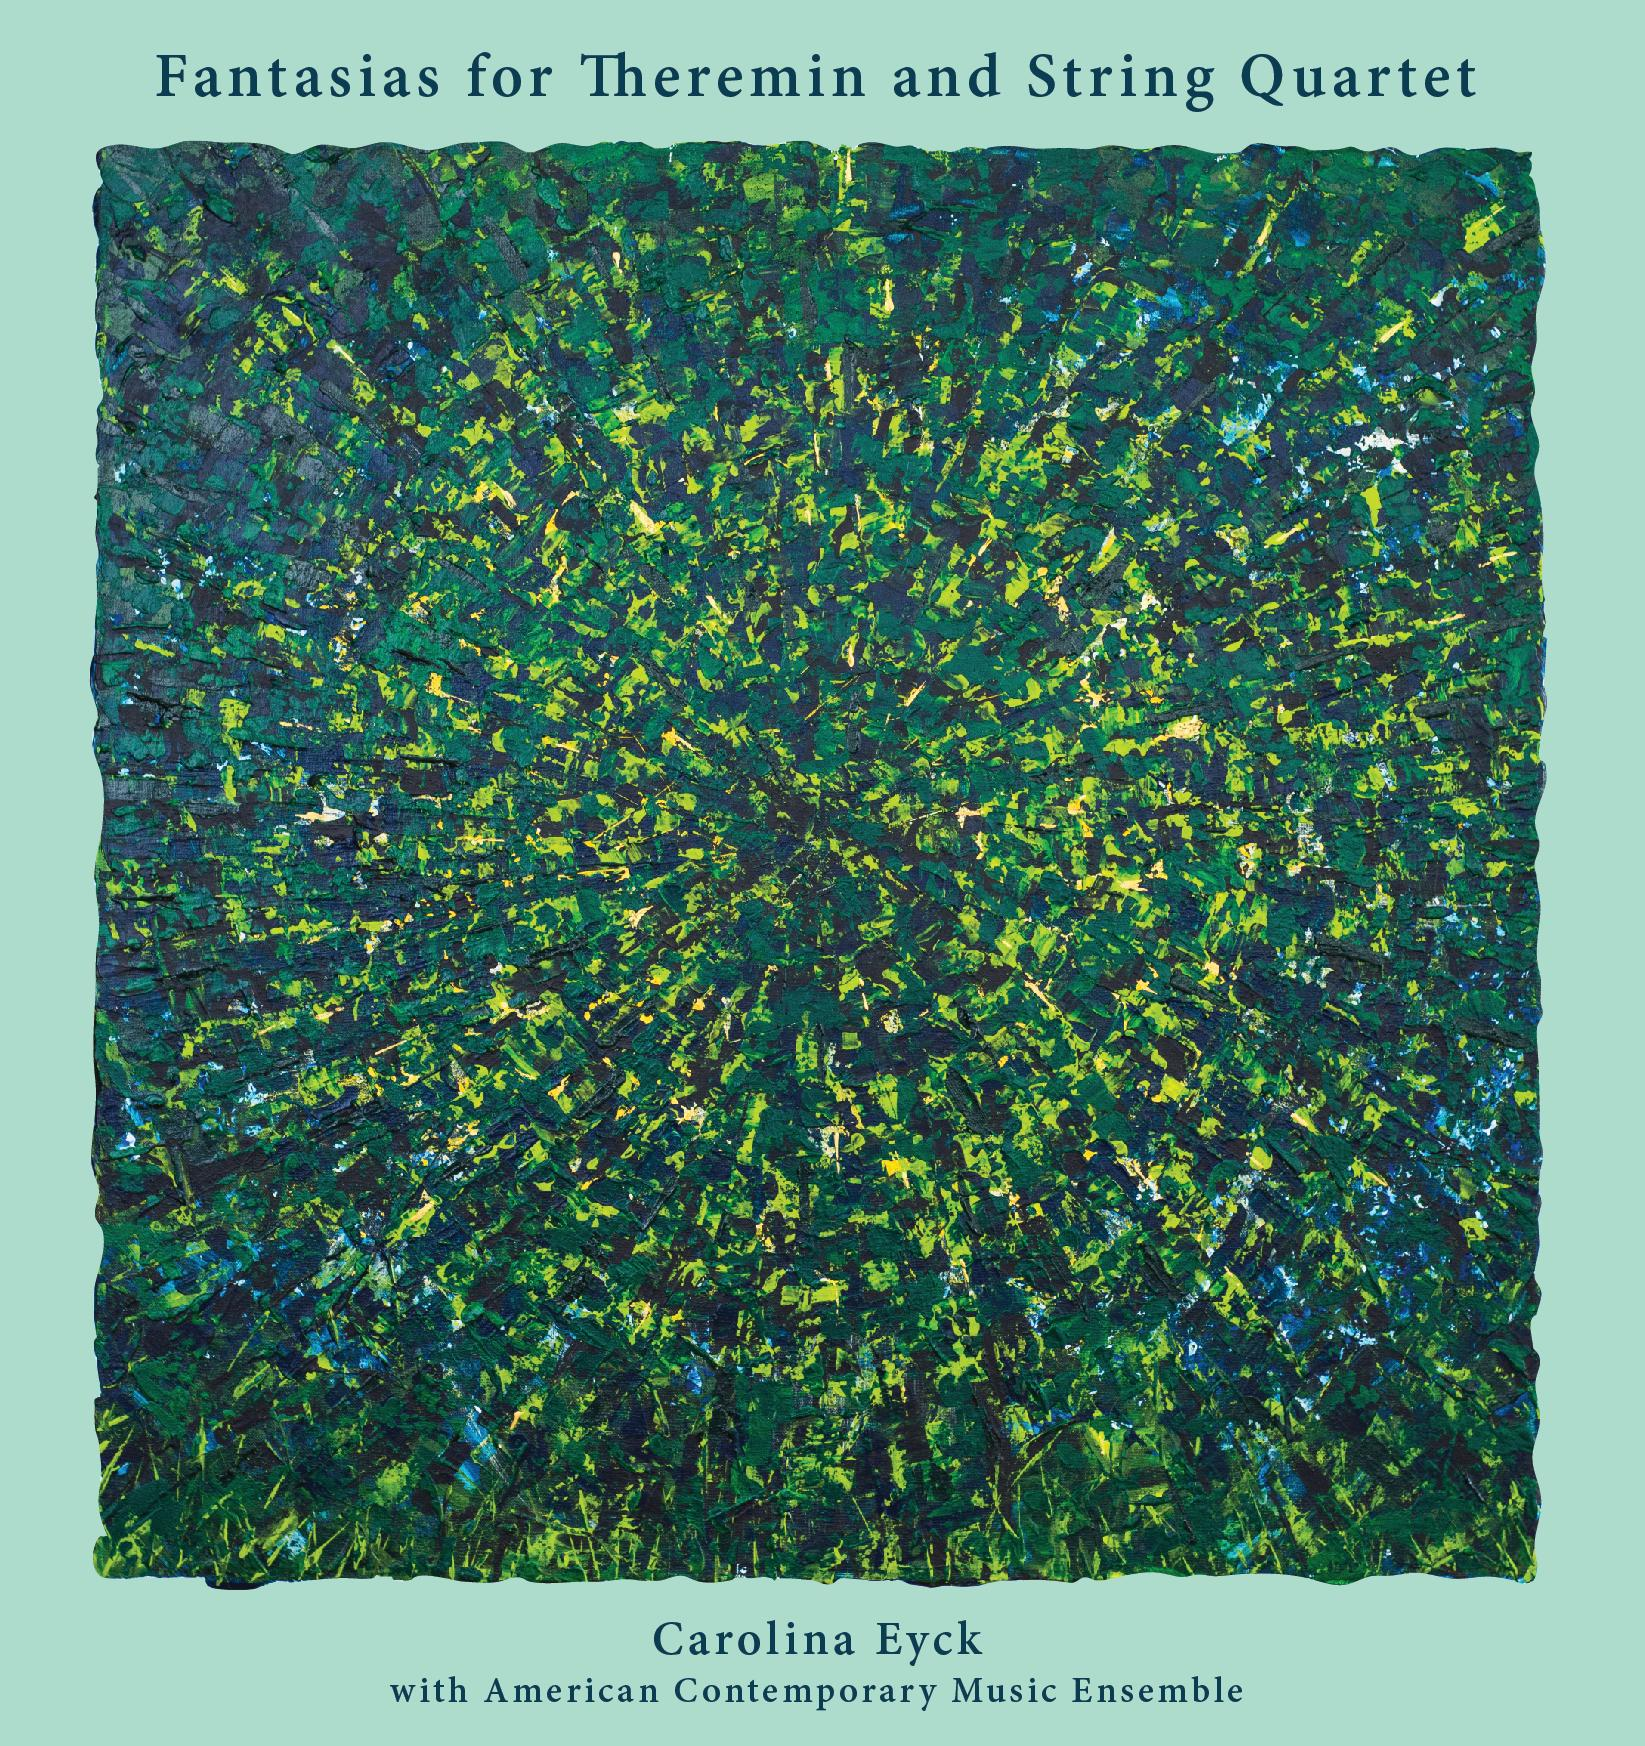 CarolinaEyck_Fantasias for Theremin and String Quartet_CDCover